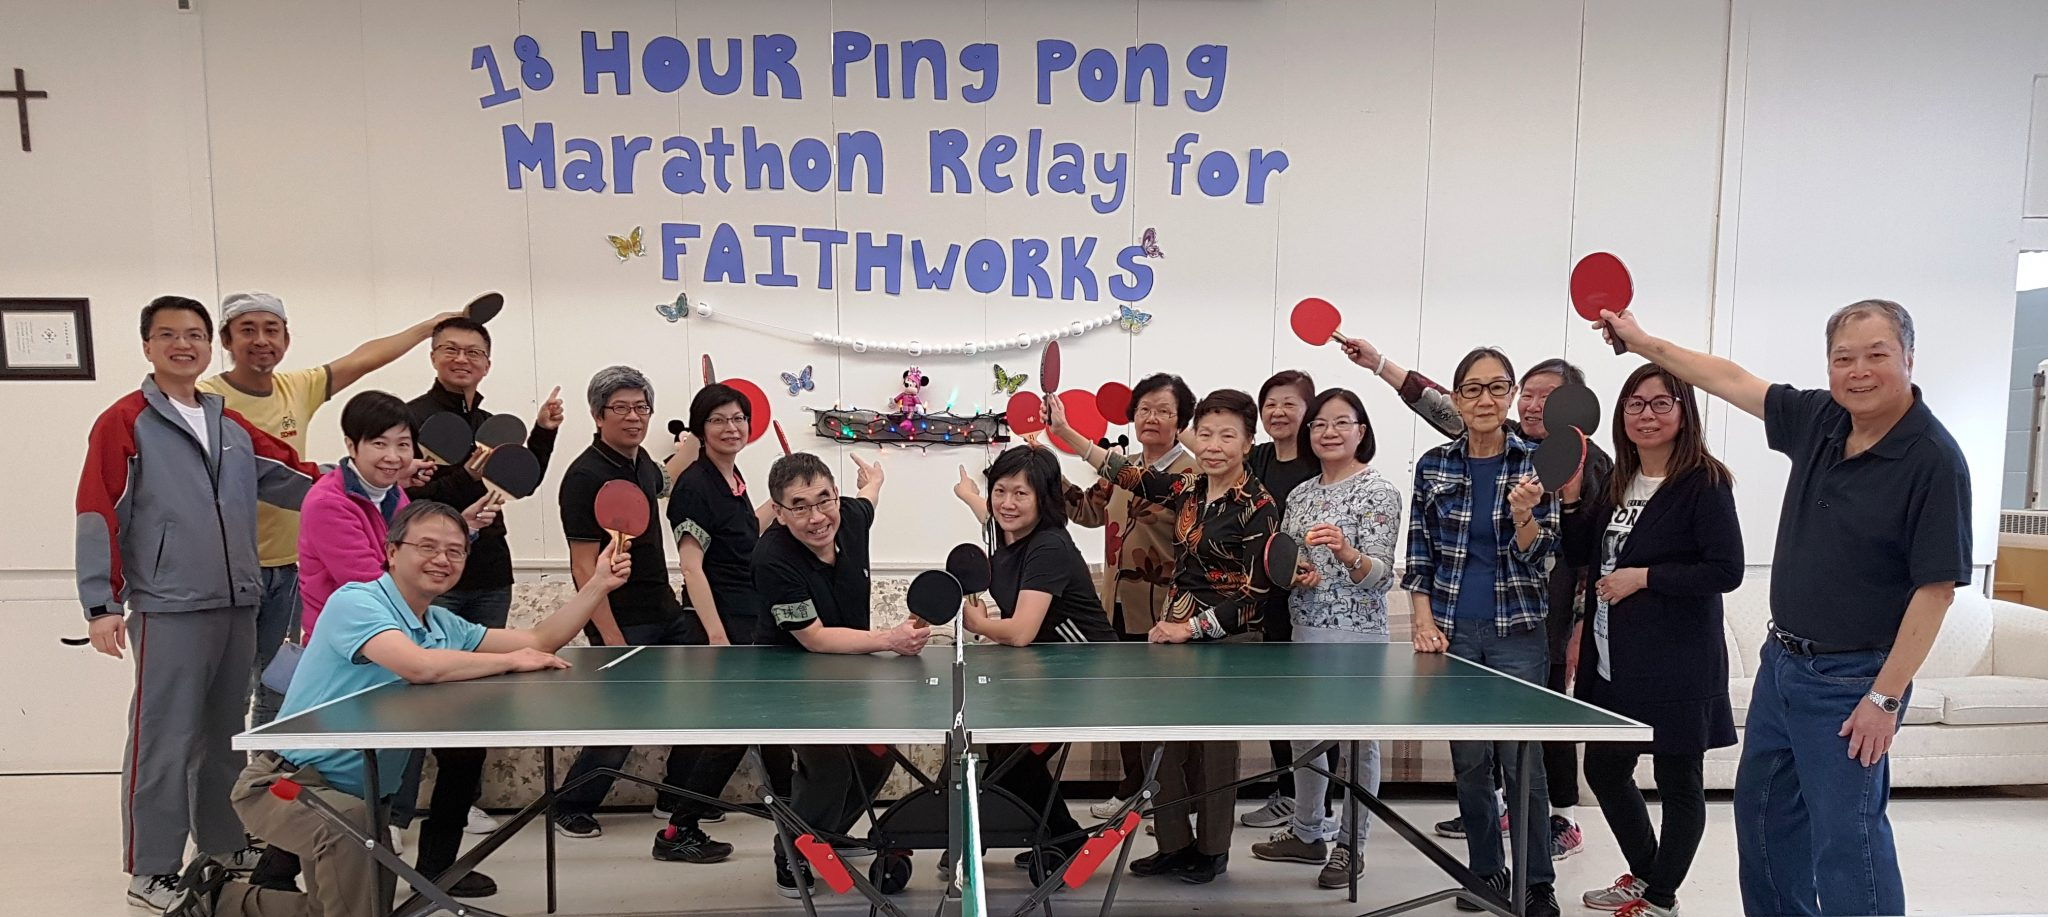 How One Church turned Ping Pong into Mission